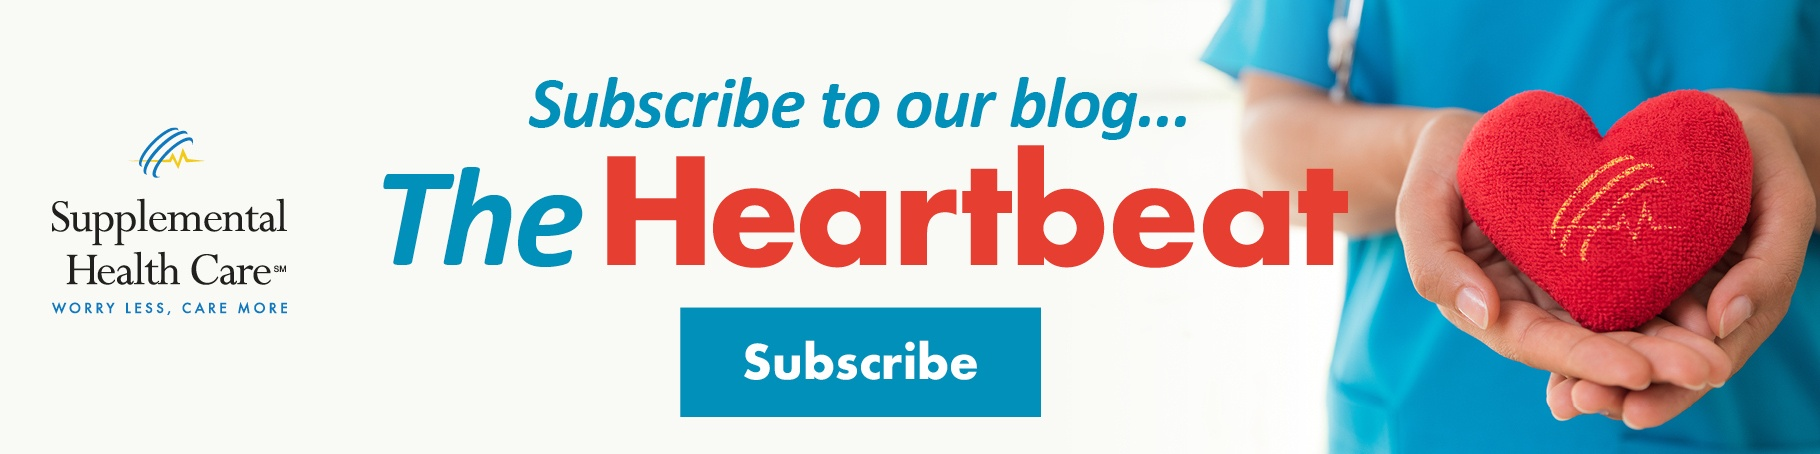 Subscribe to Blog Heart Hands